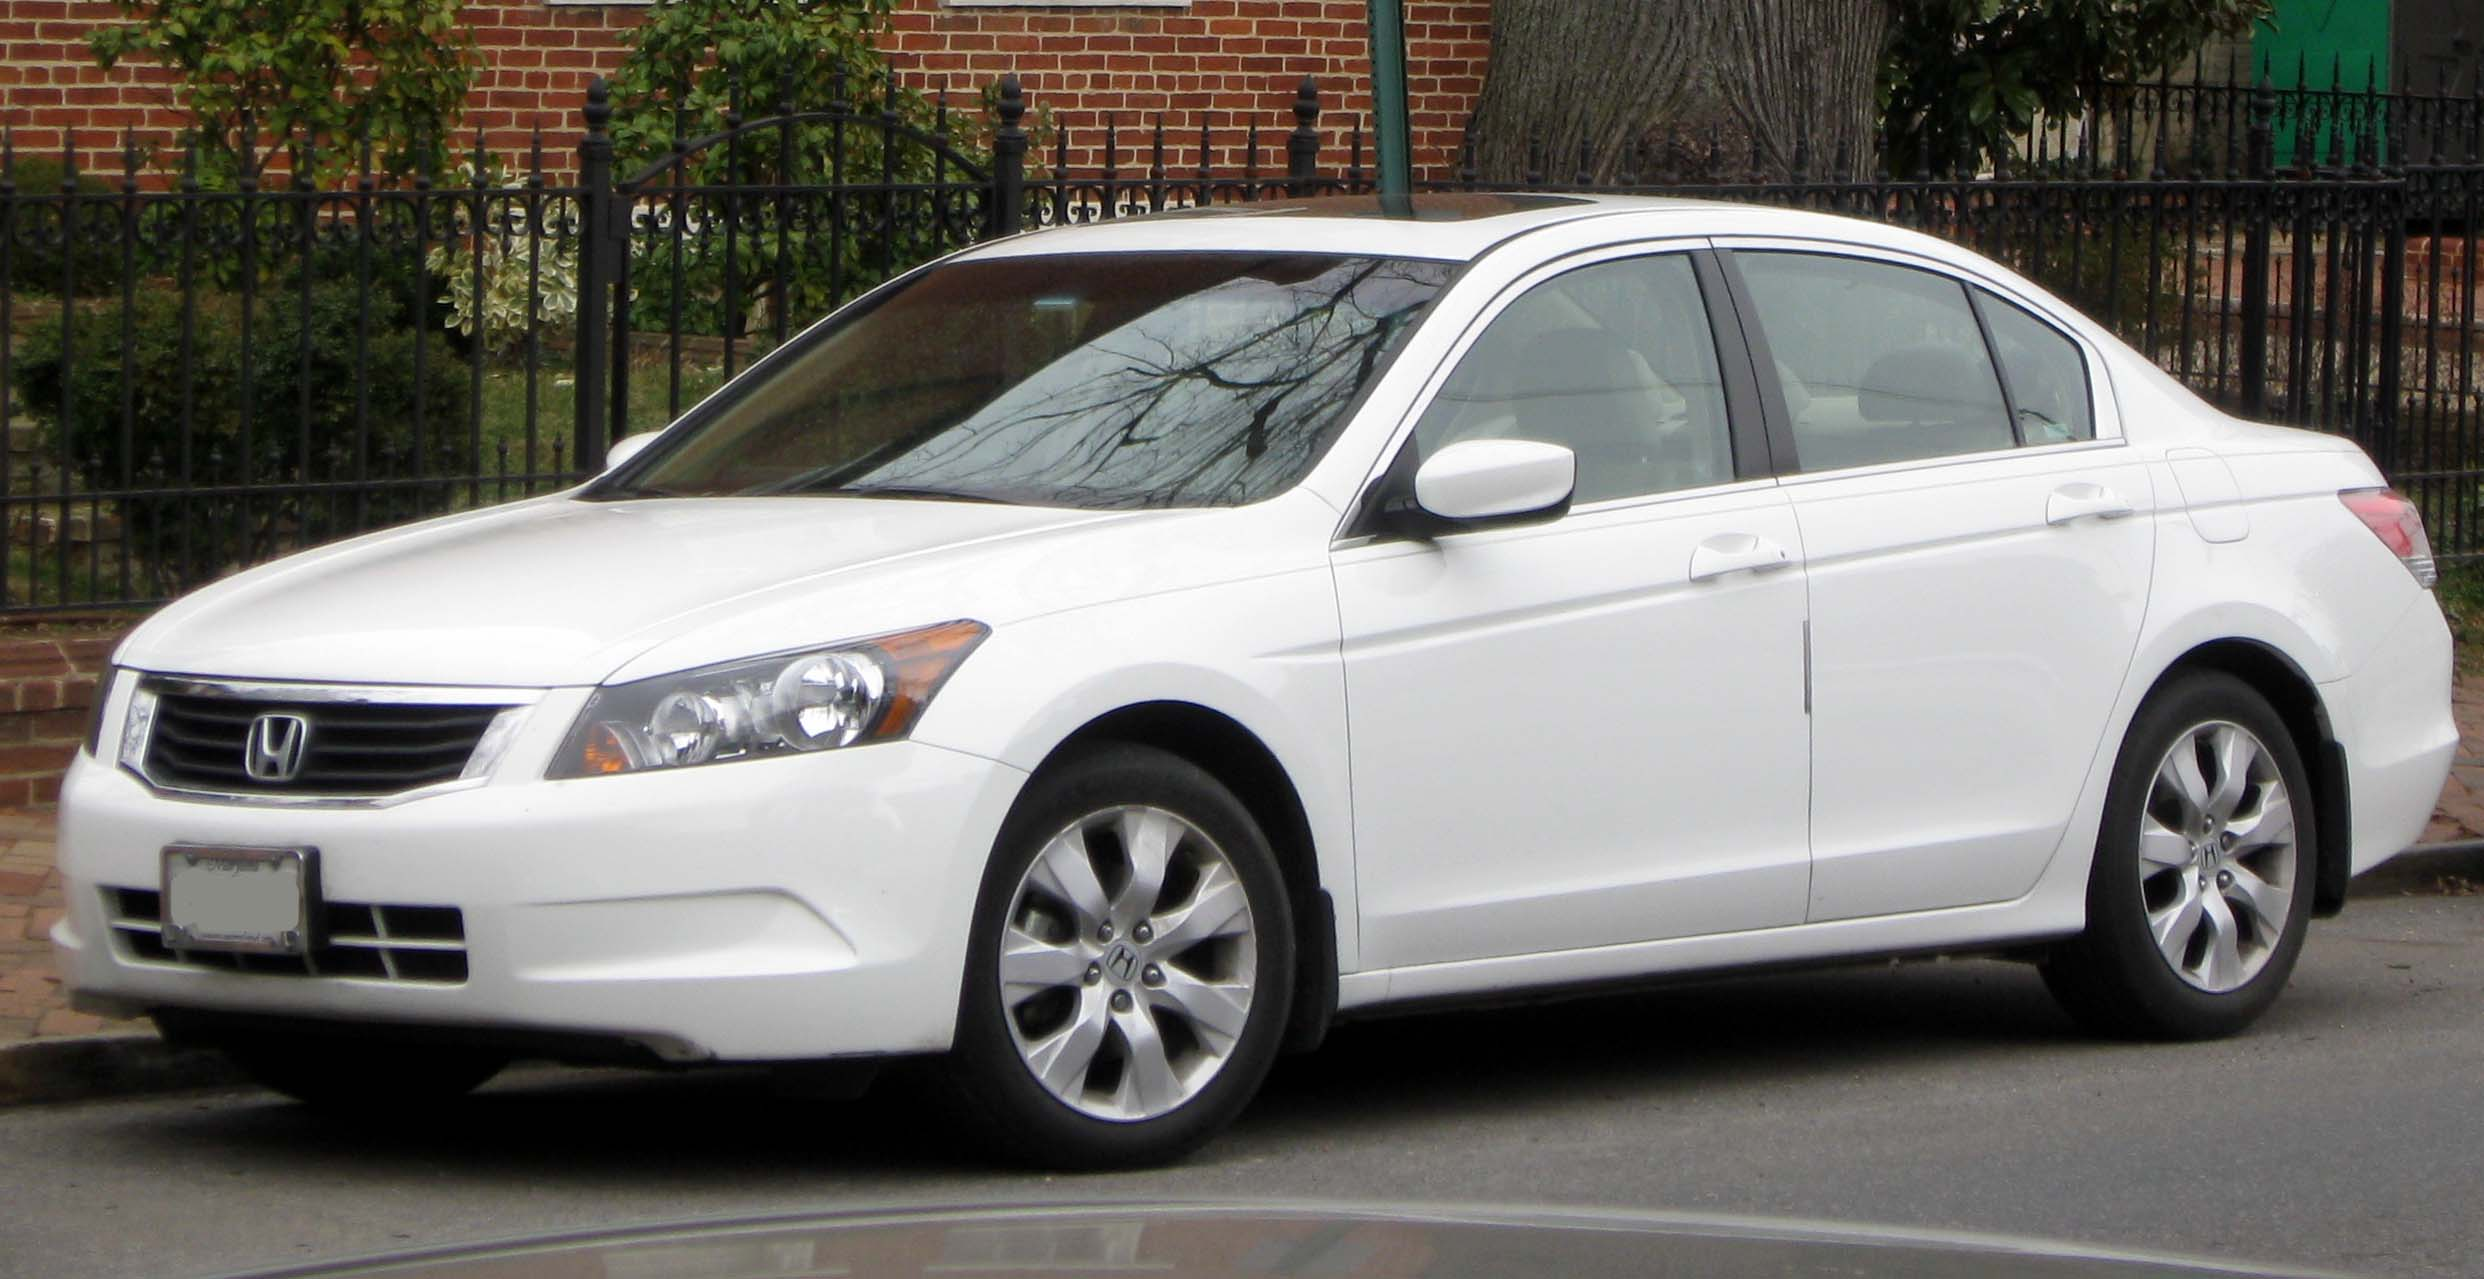 2008 Honda Accord #1